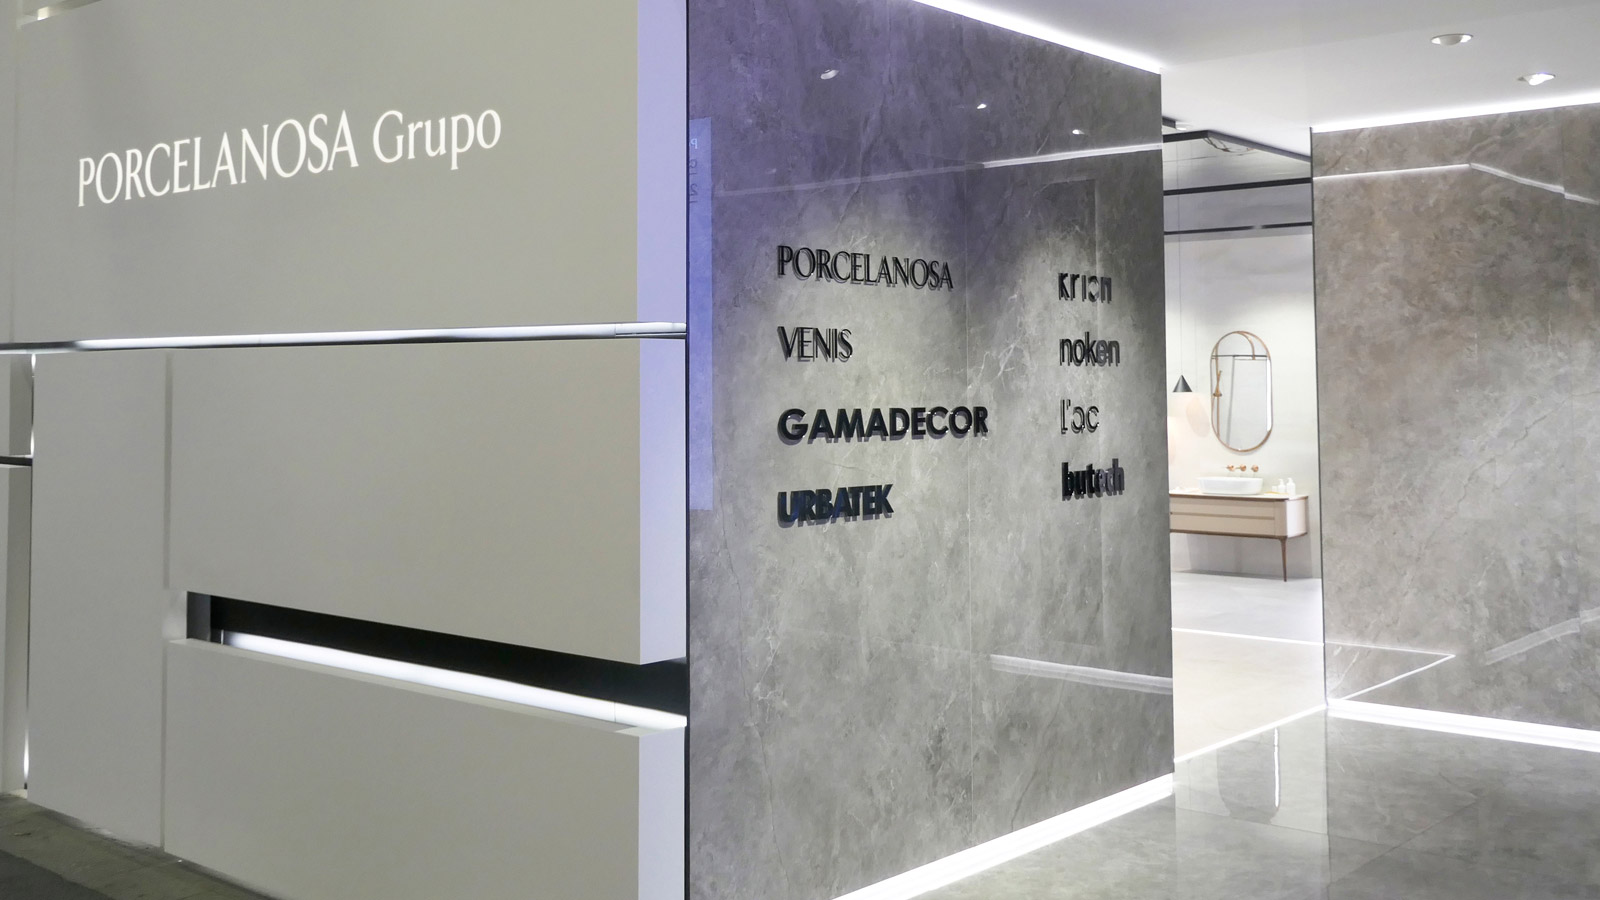 PORCELANOSA Grupo strengthens its presence at Cersaie 2019 through a smart and sustainable design